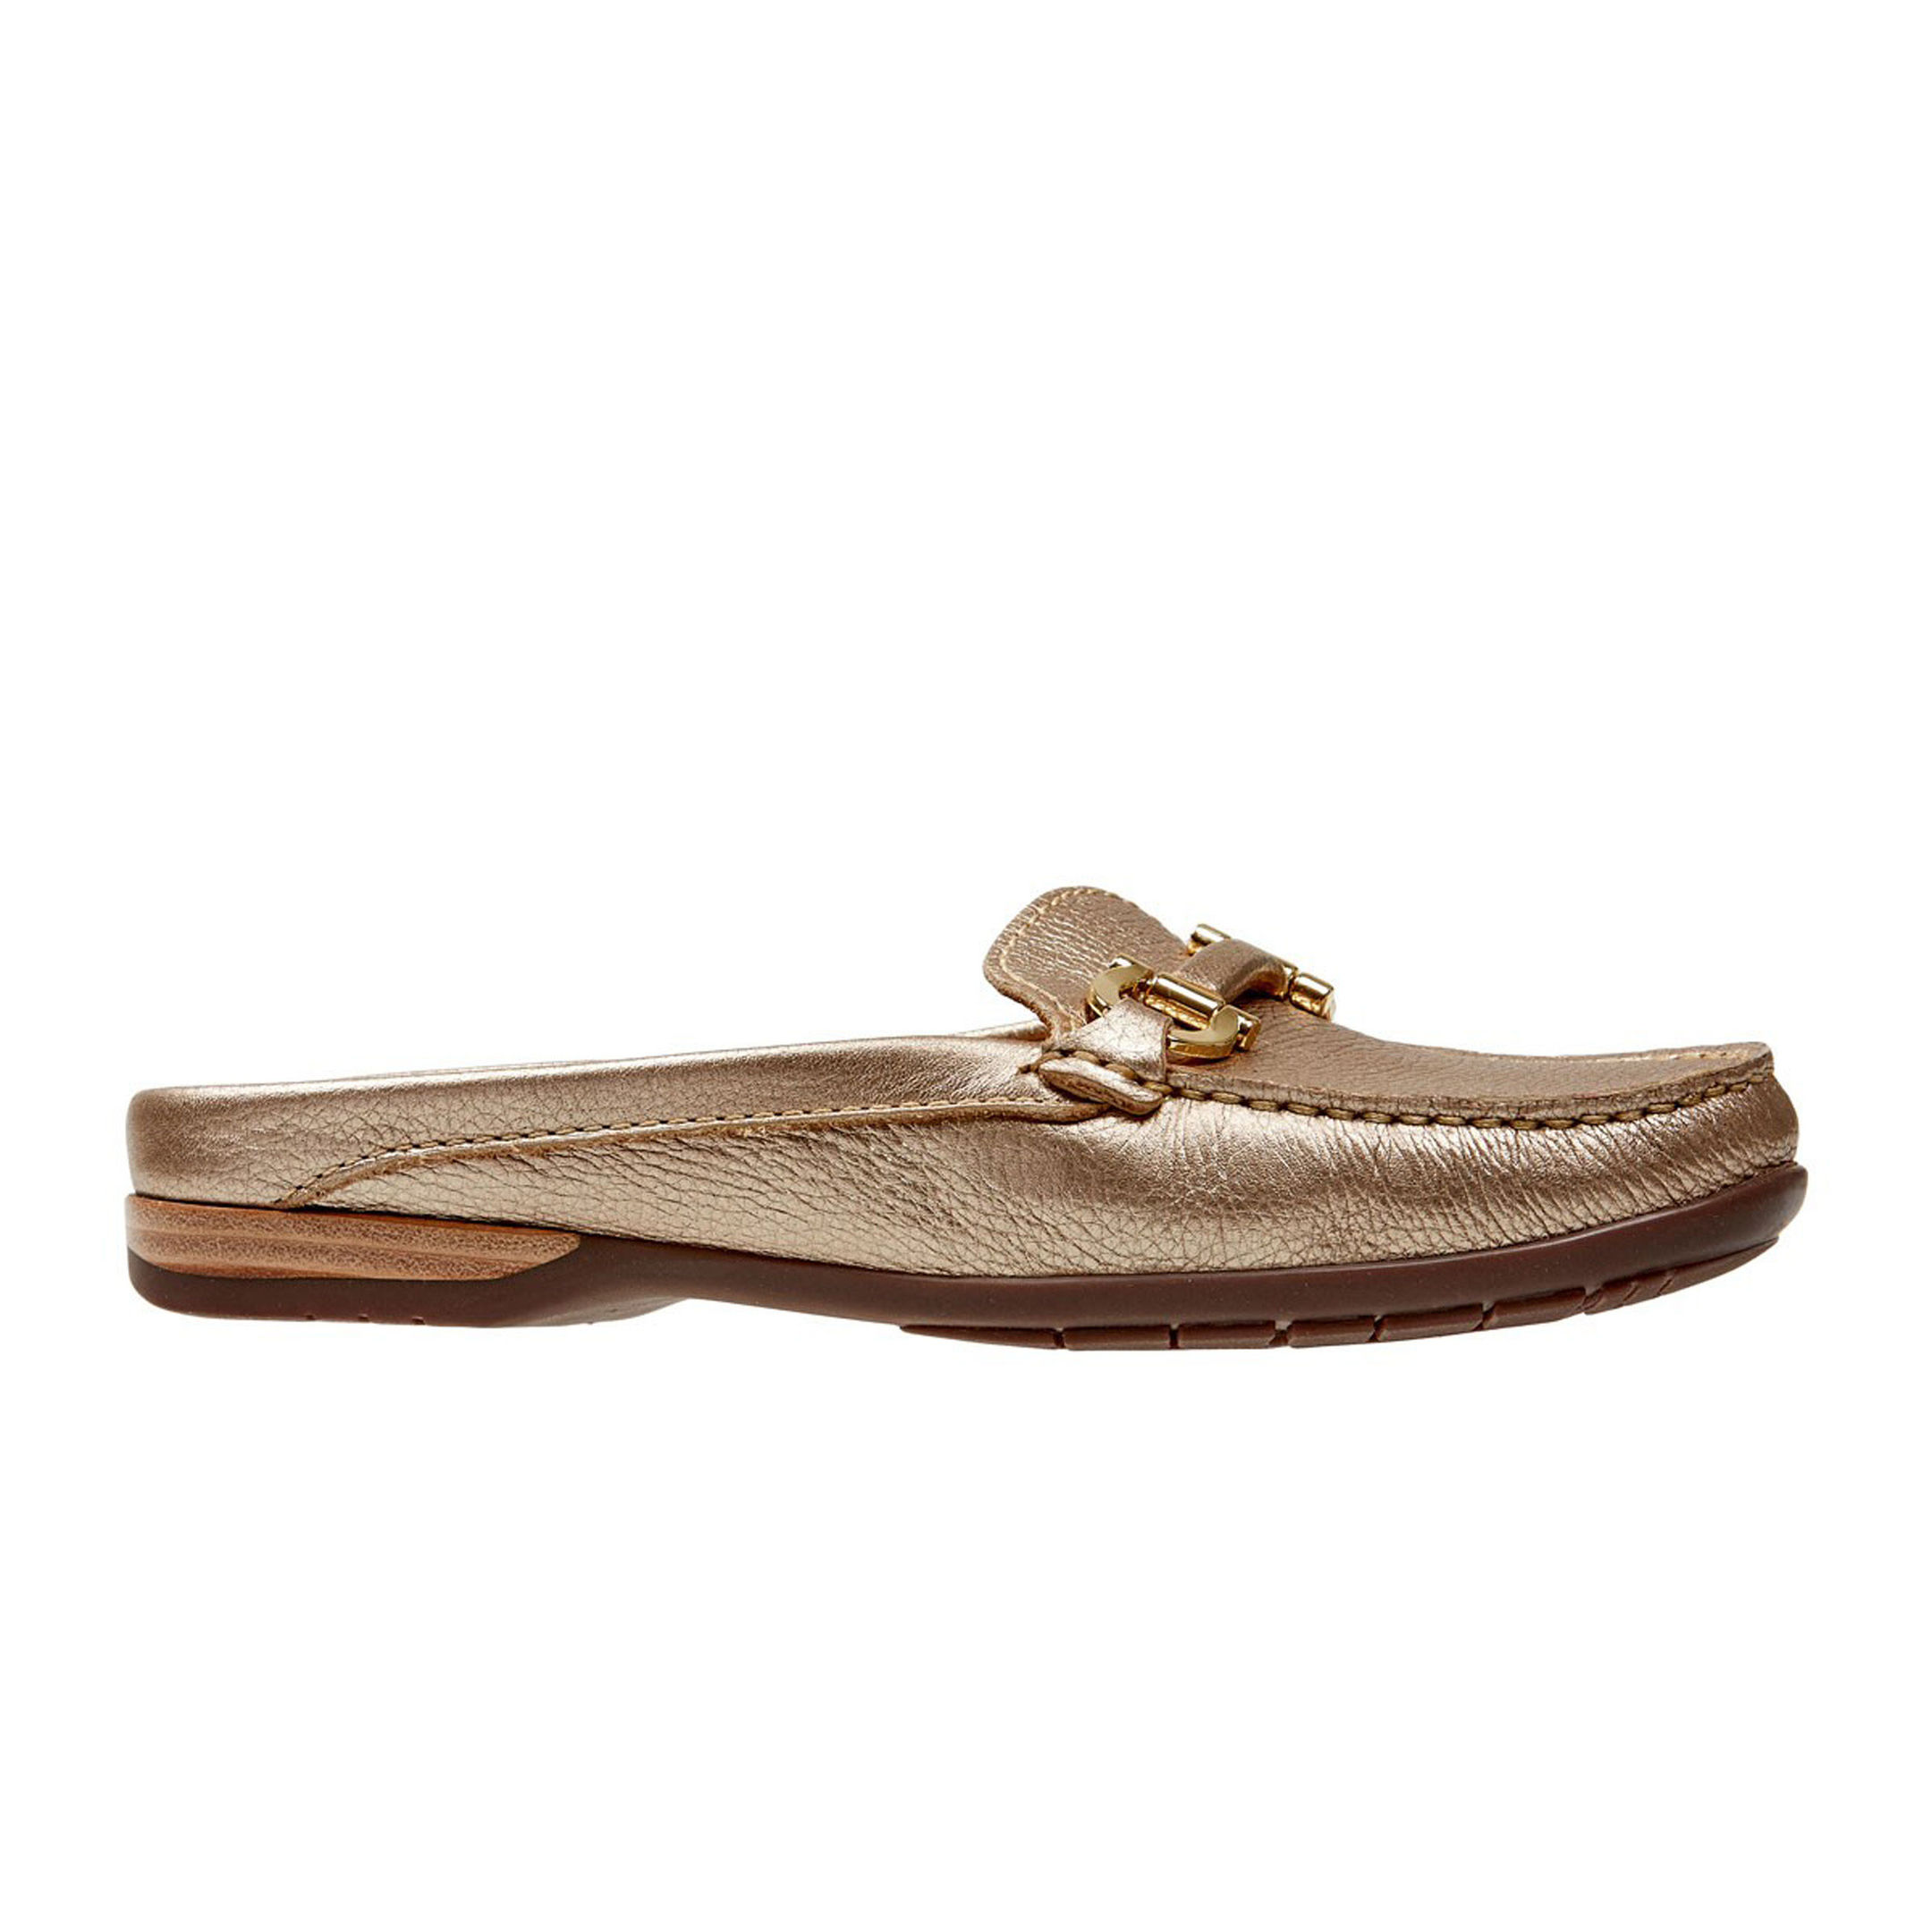 Van Dal Antique Gold Cashmere Loafer, available from vandalshoes.com.